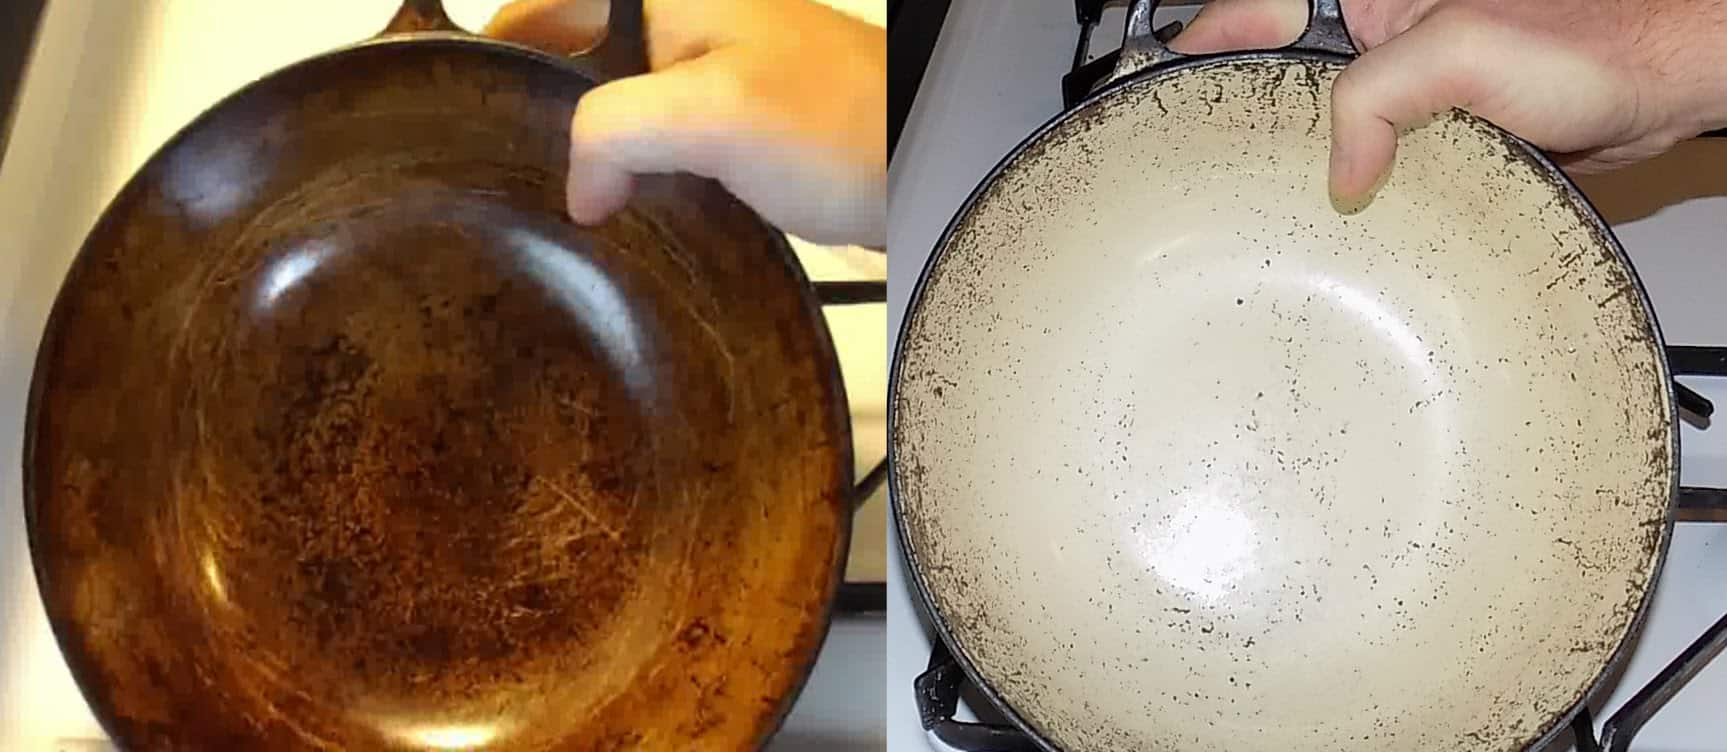 Clean stained enamel cookware with baking soda and hydrogen peroxide